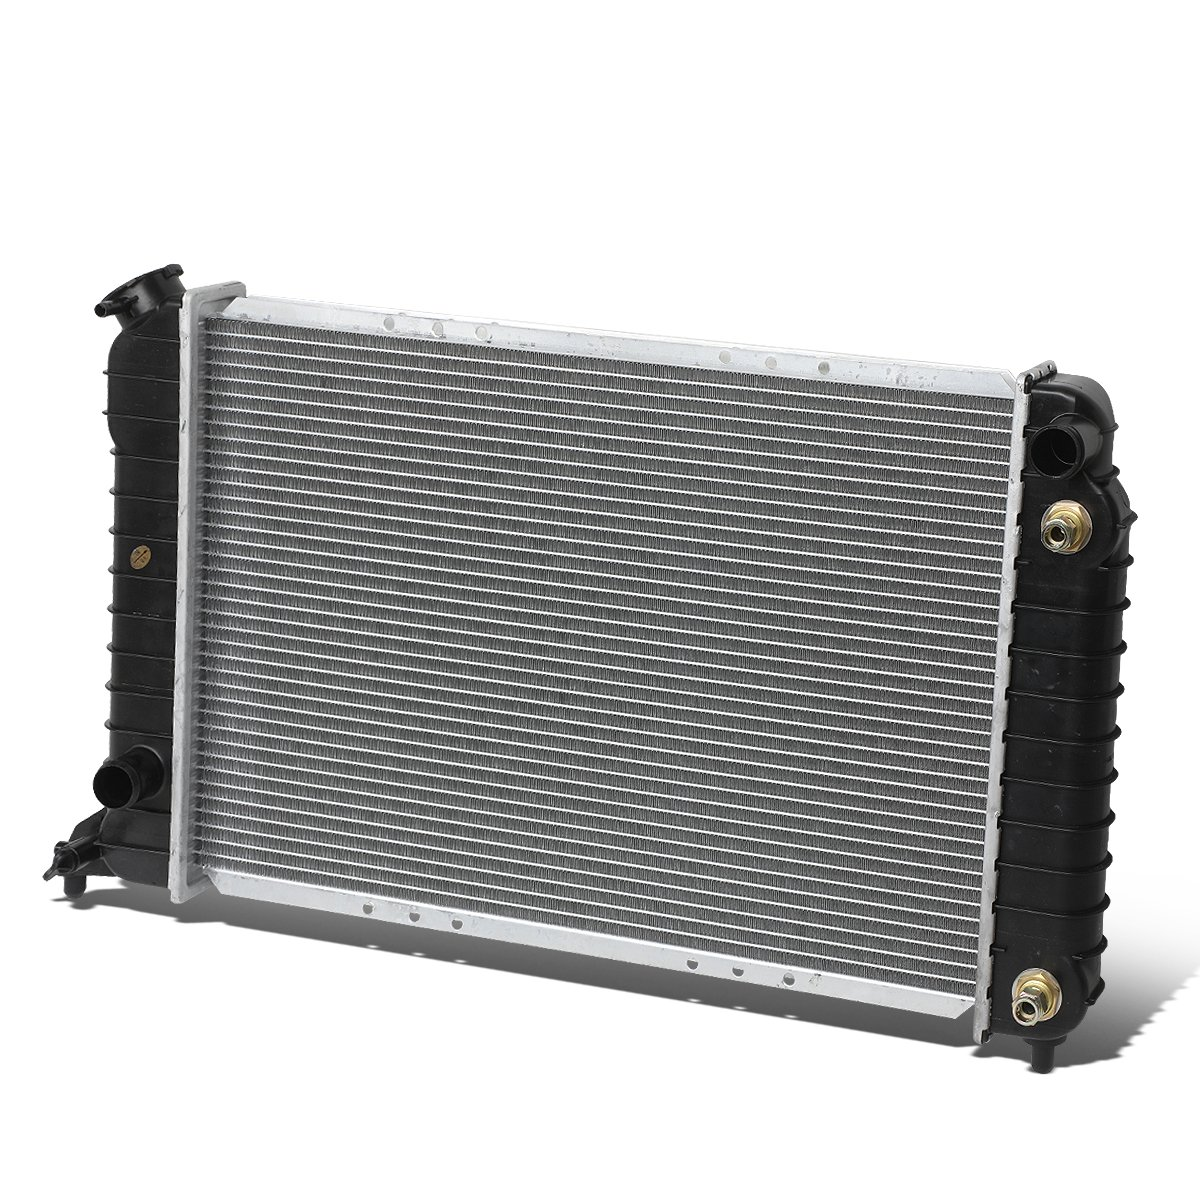 RADIATOR FOR CHEVY GMC ISUZU S10 SONOMA HOMBRE 2.2 L4 4CYL 1994-2003 96 97 98 99